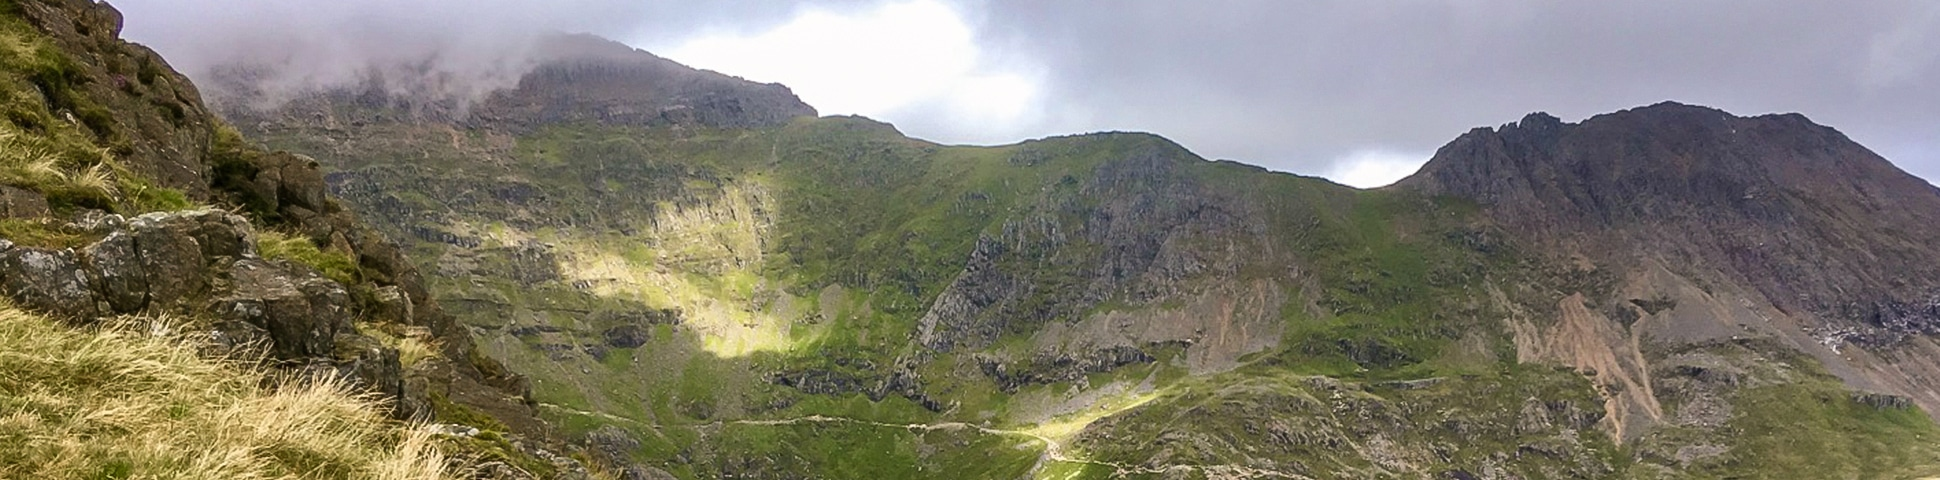 Panoramic view on Snowdon via Pyg Track and Miners Track hike in Snowdonia, Wales